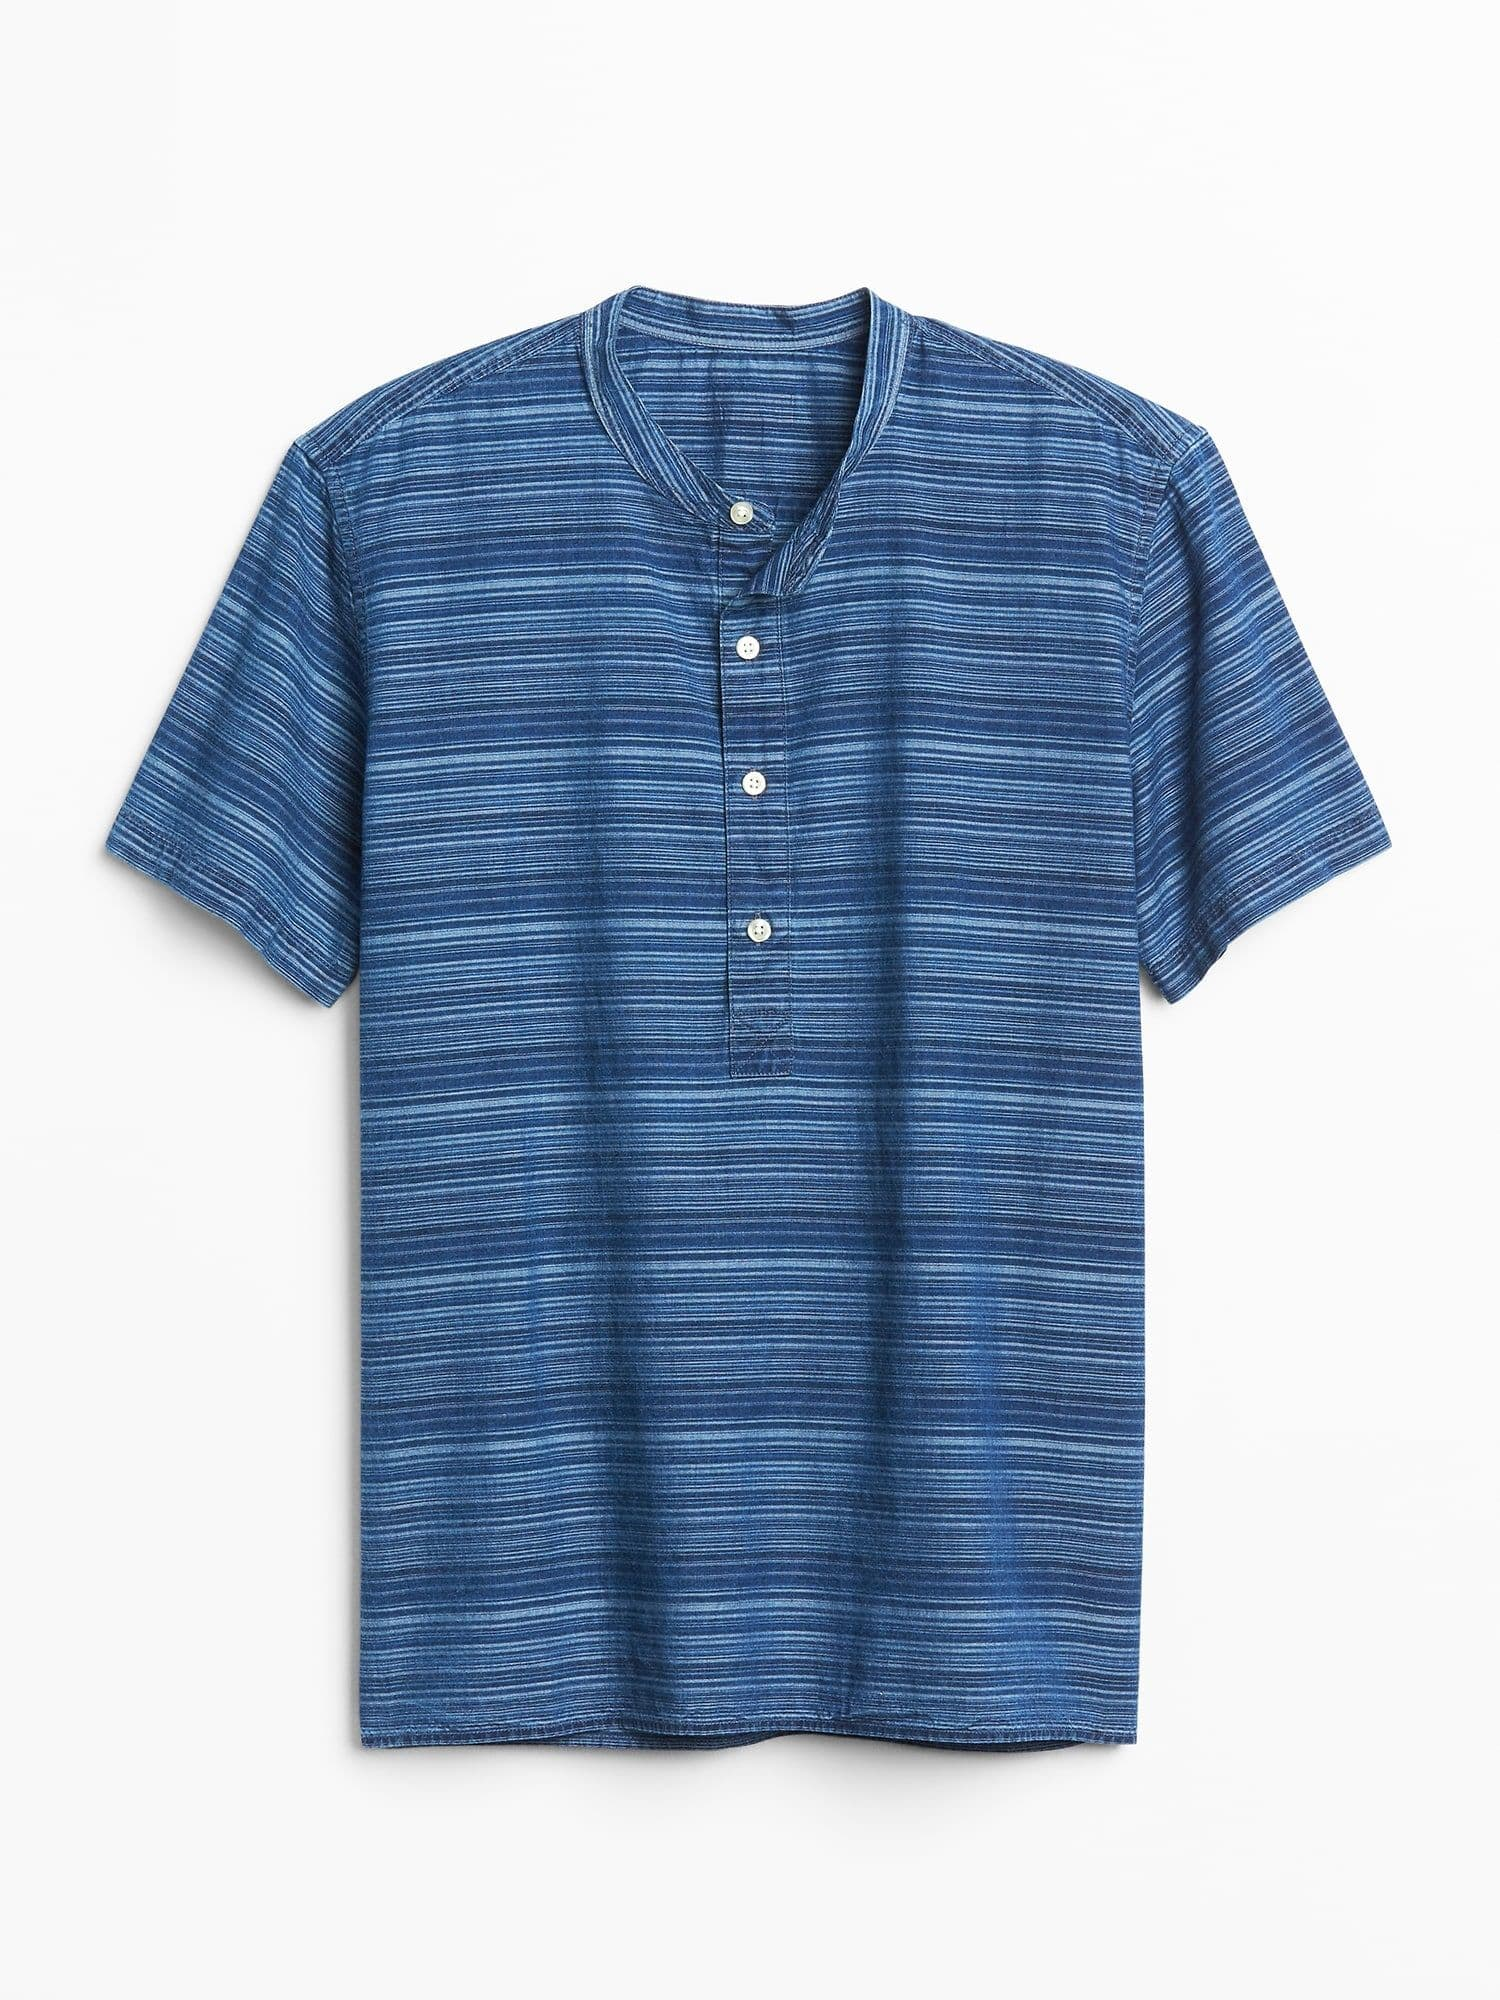 Short Sleeve Half-Button Shirt in Chambray